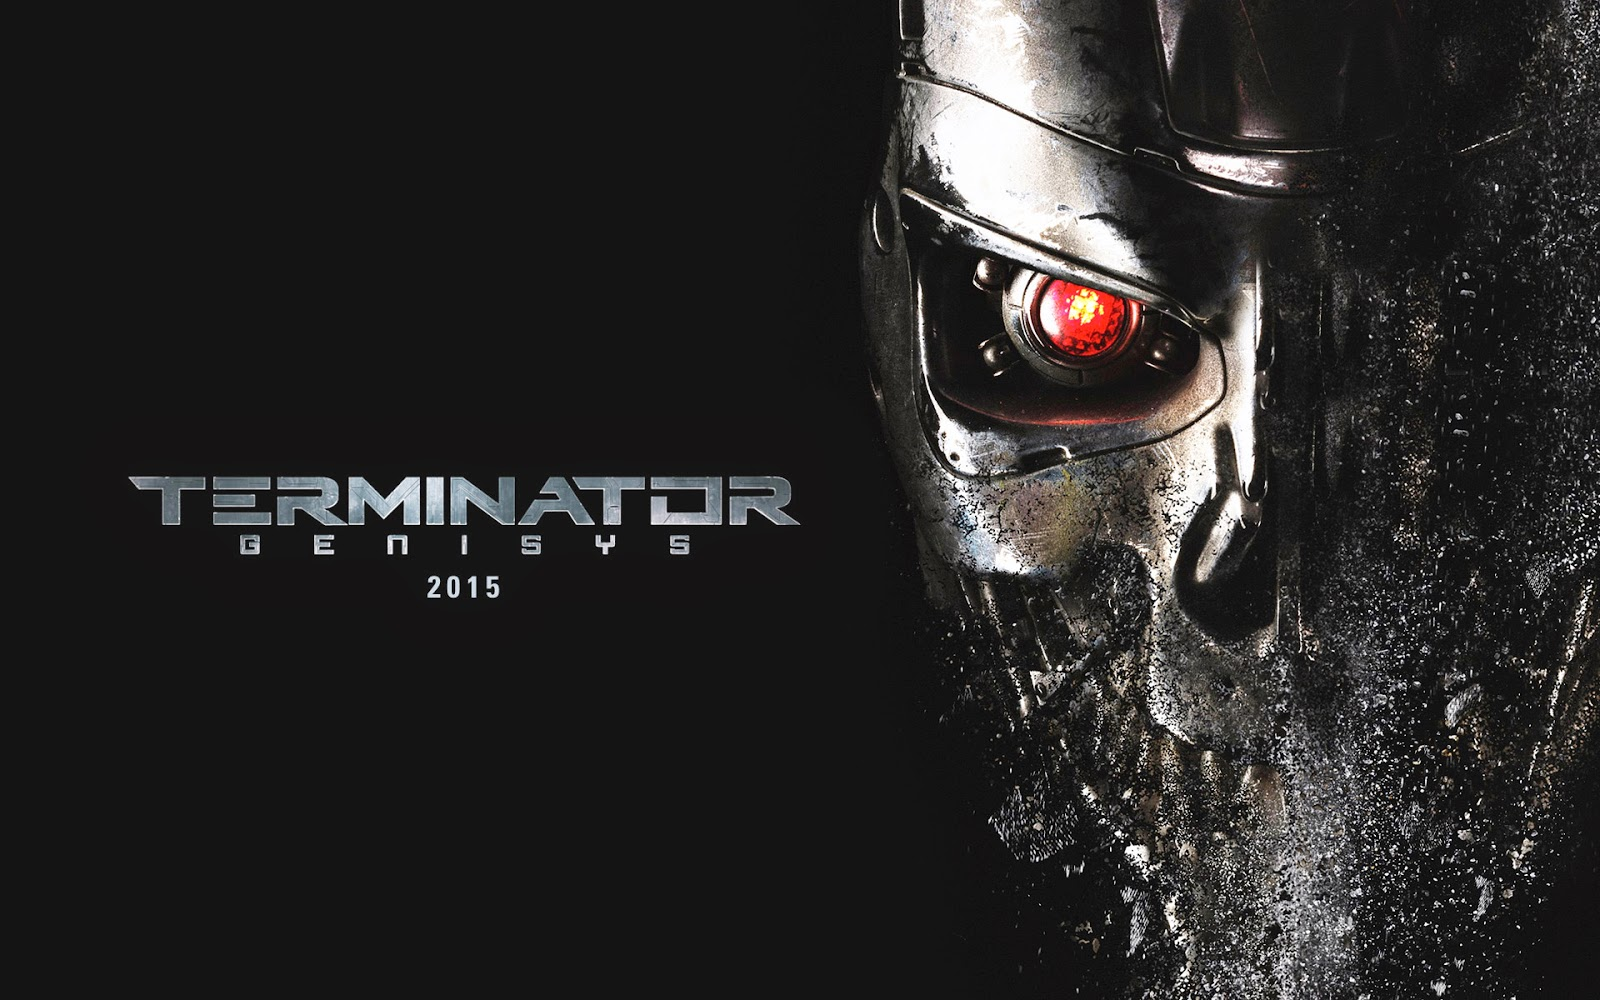 Super HD Wallpapers Terminator Genisys for Laptop 28 1600x1000